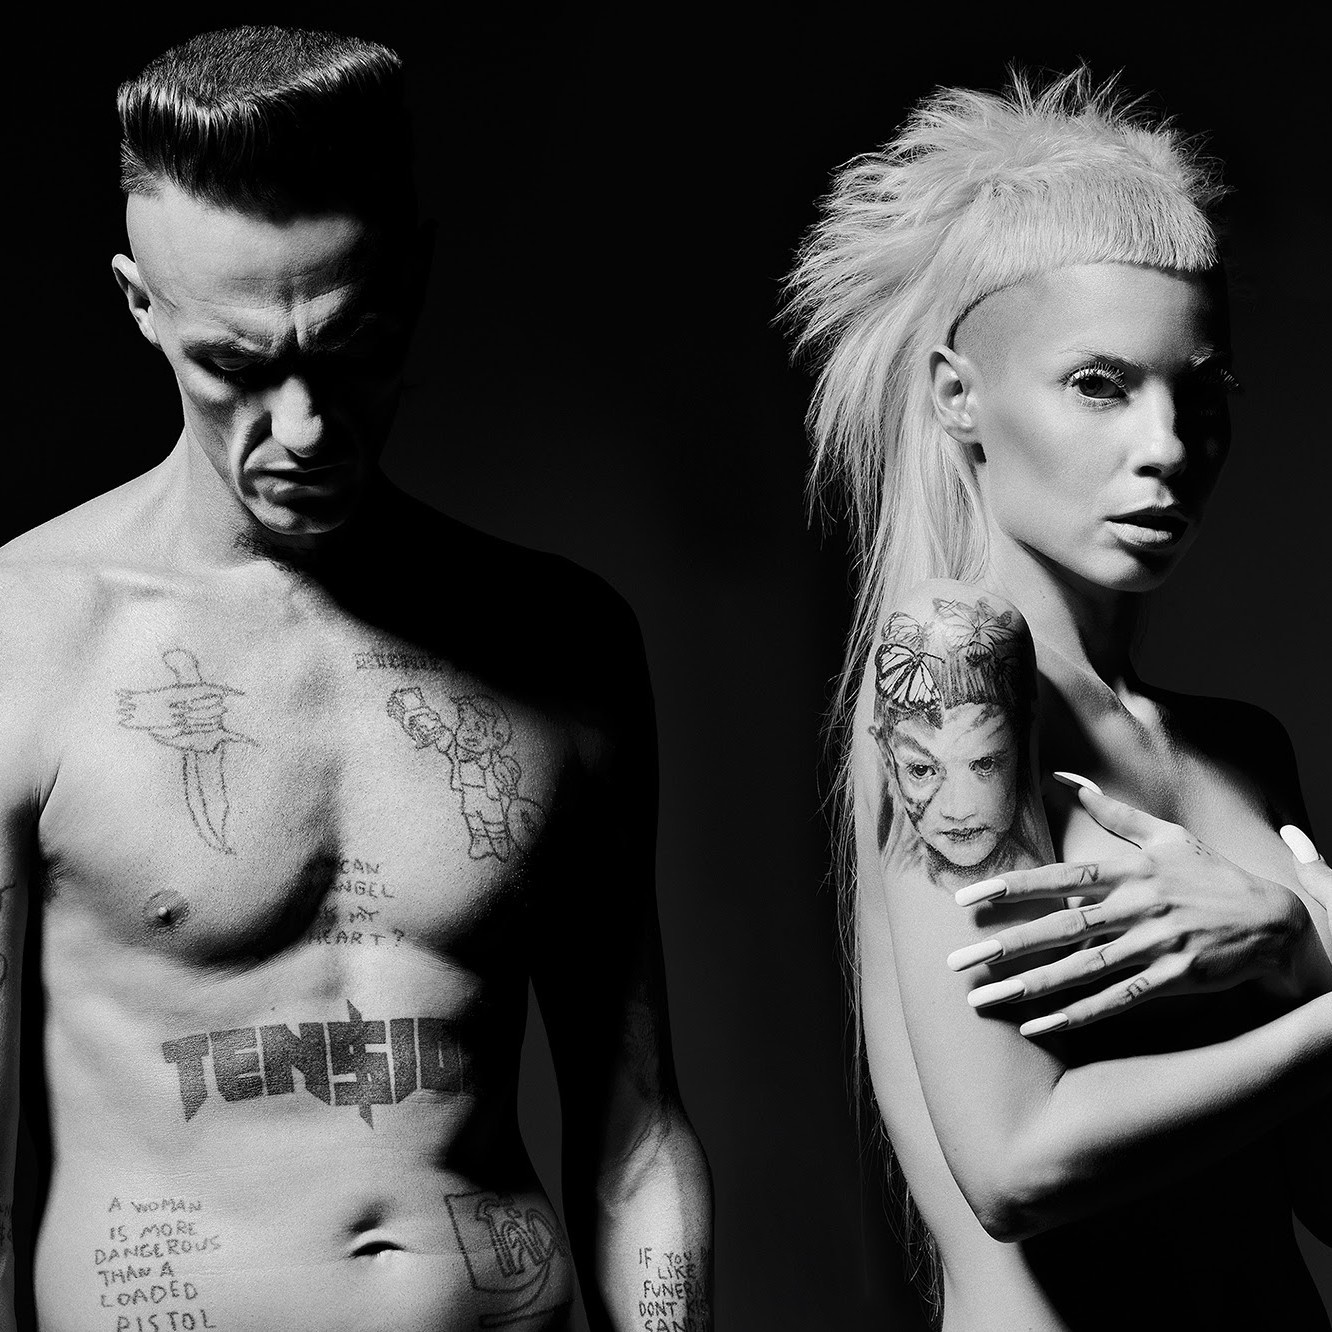 Die Antwoord. Photo courtesy the band.